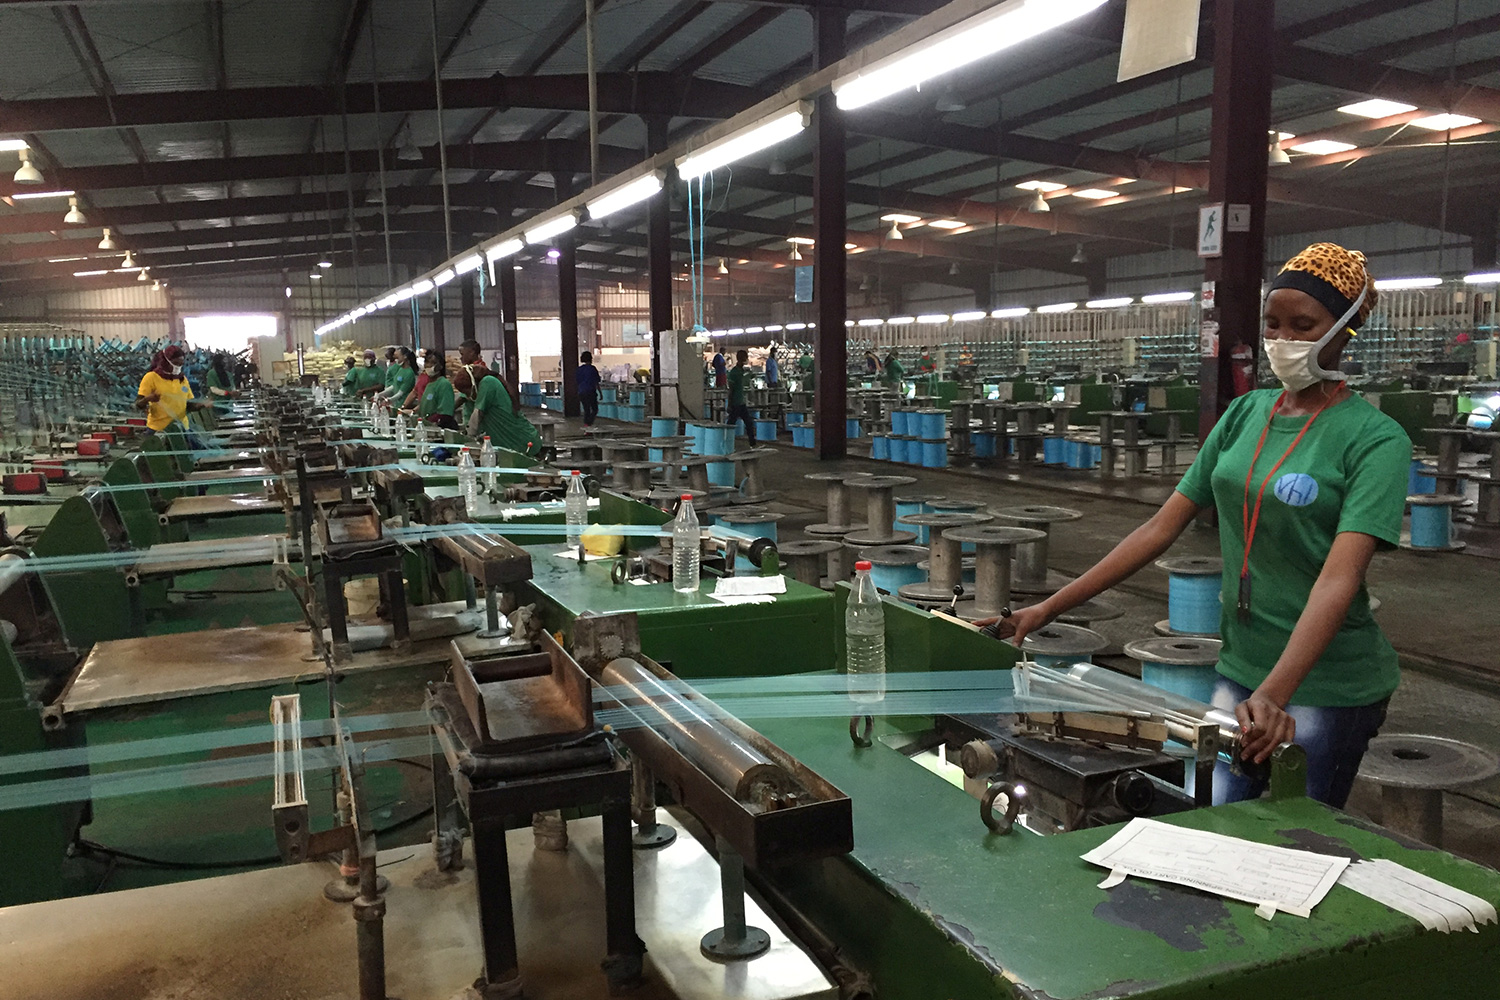 The image shows a large factory filled with machines and several workers at the controls of what appear to be industrial looms stretching fabric fibers.